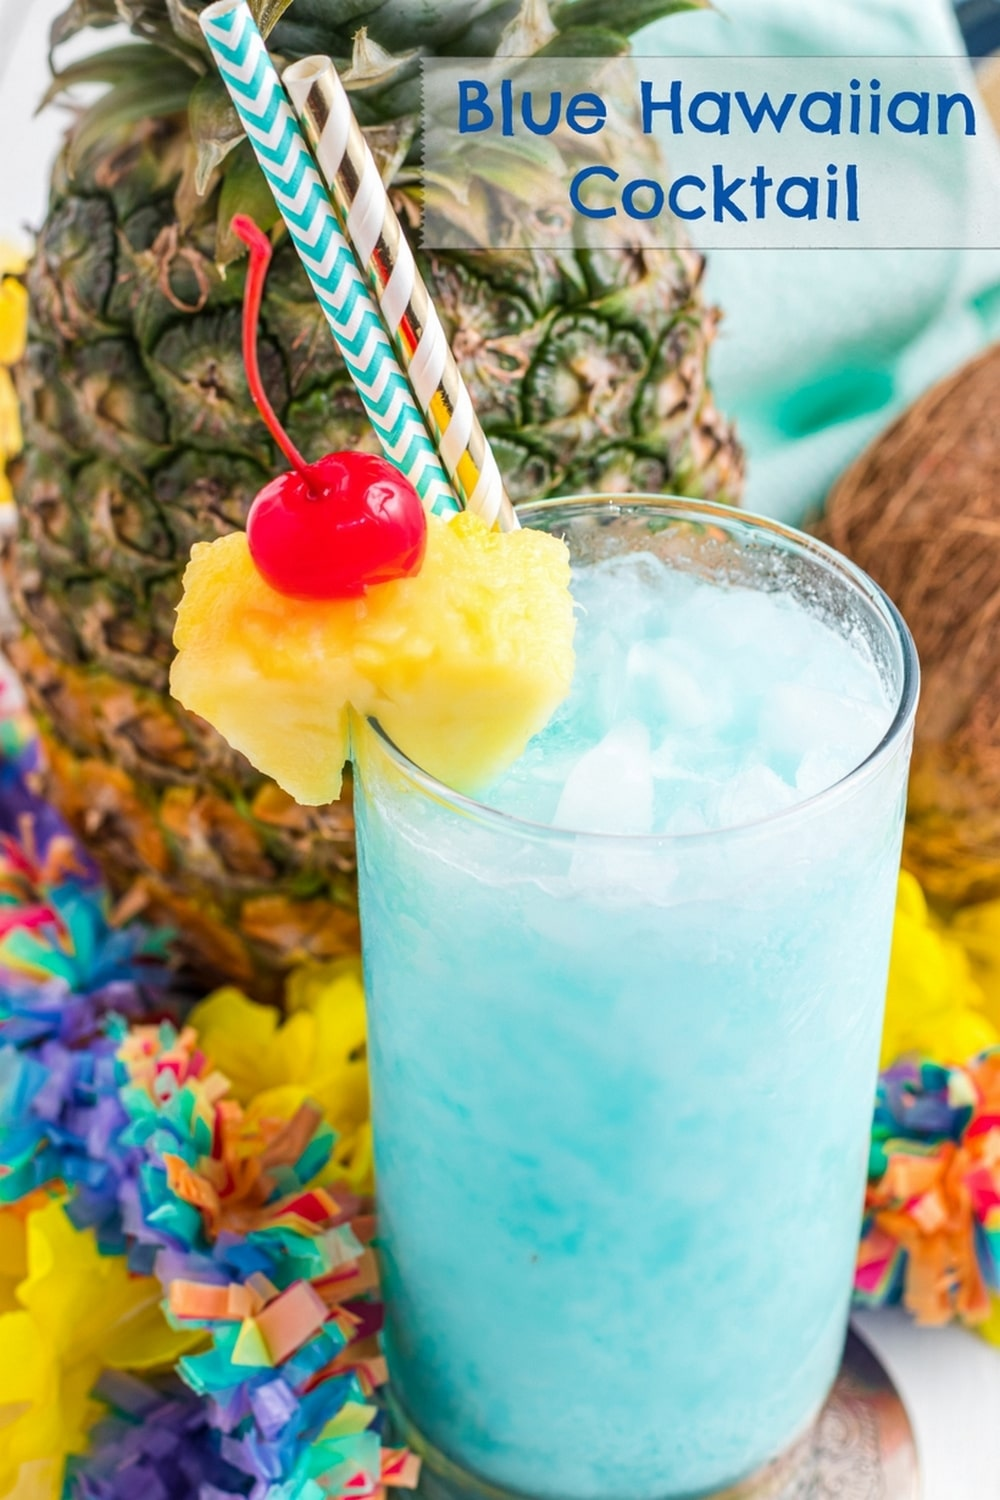 This Blue Hawaiian cocktail tastes like a vacation in a glass. Notes of pineapple, coconut and citrus from the Blue Curacao liqueur make it the perfect tropical cocktail for summer parties! via @cmpollak1